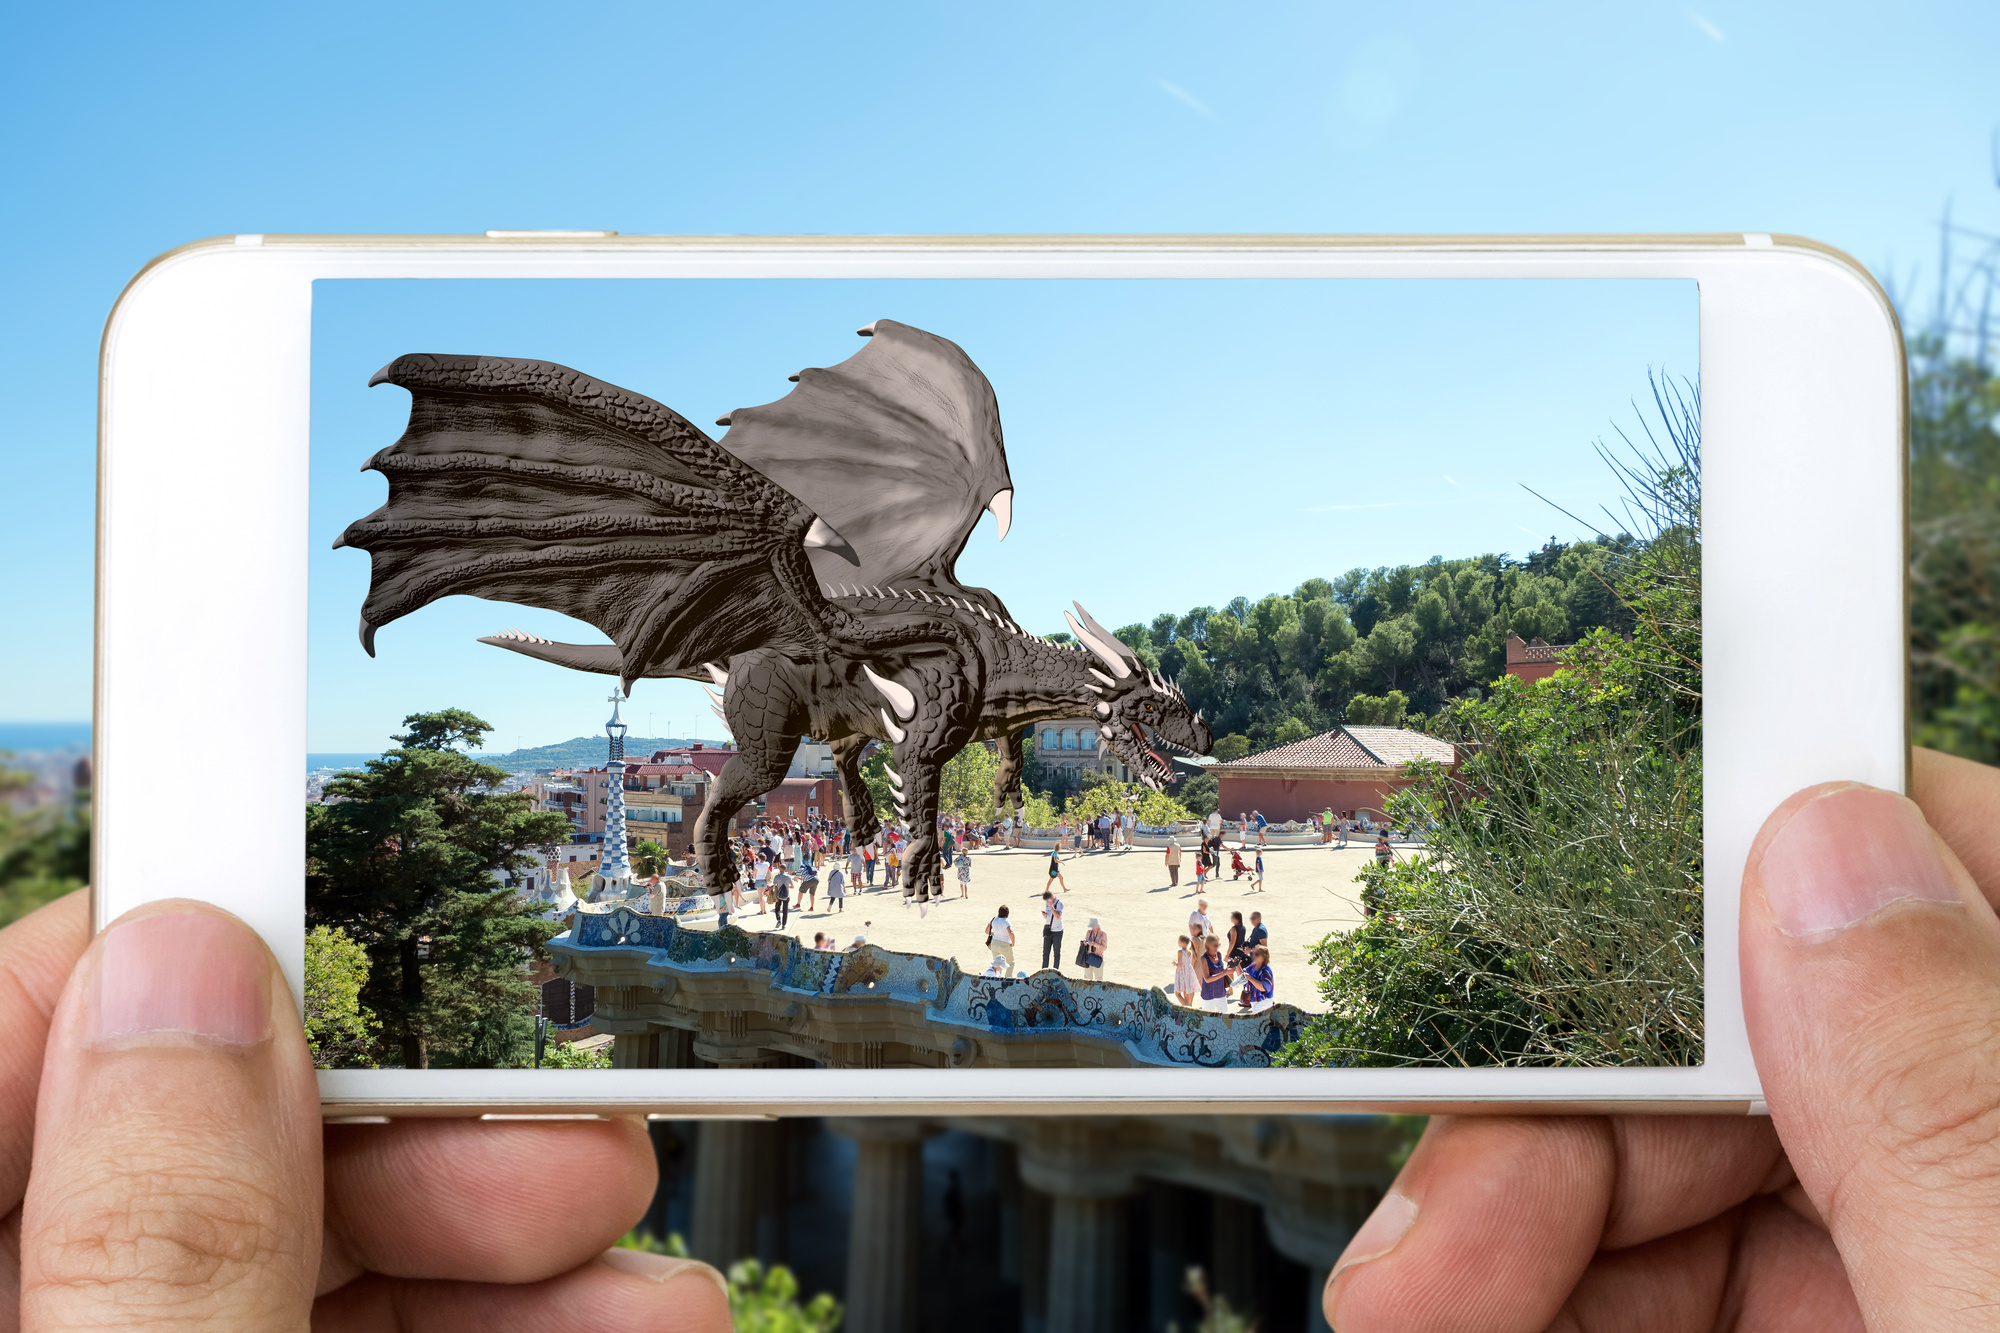 Fun With Apps: 9 Awesome AR Games You Need to Try This Year